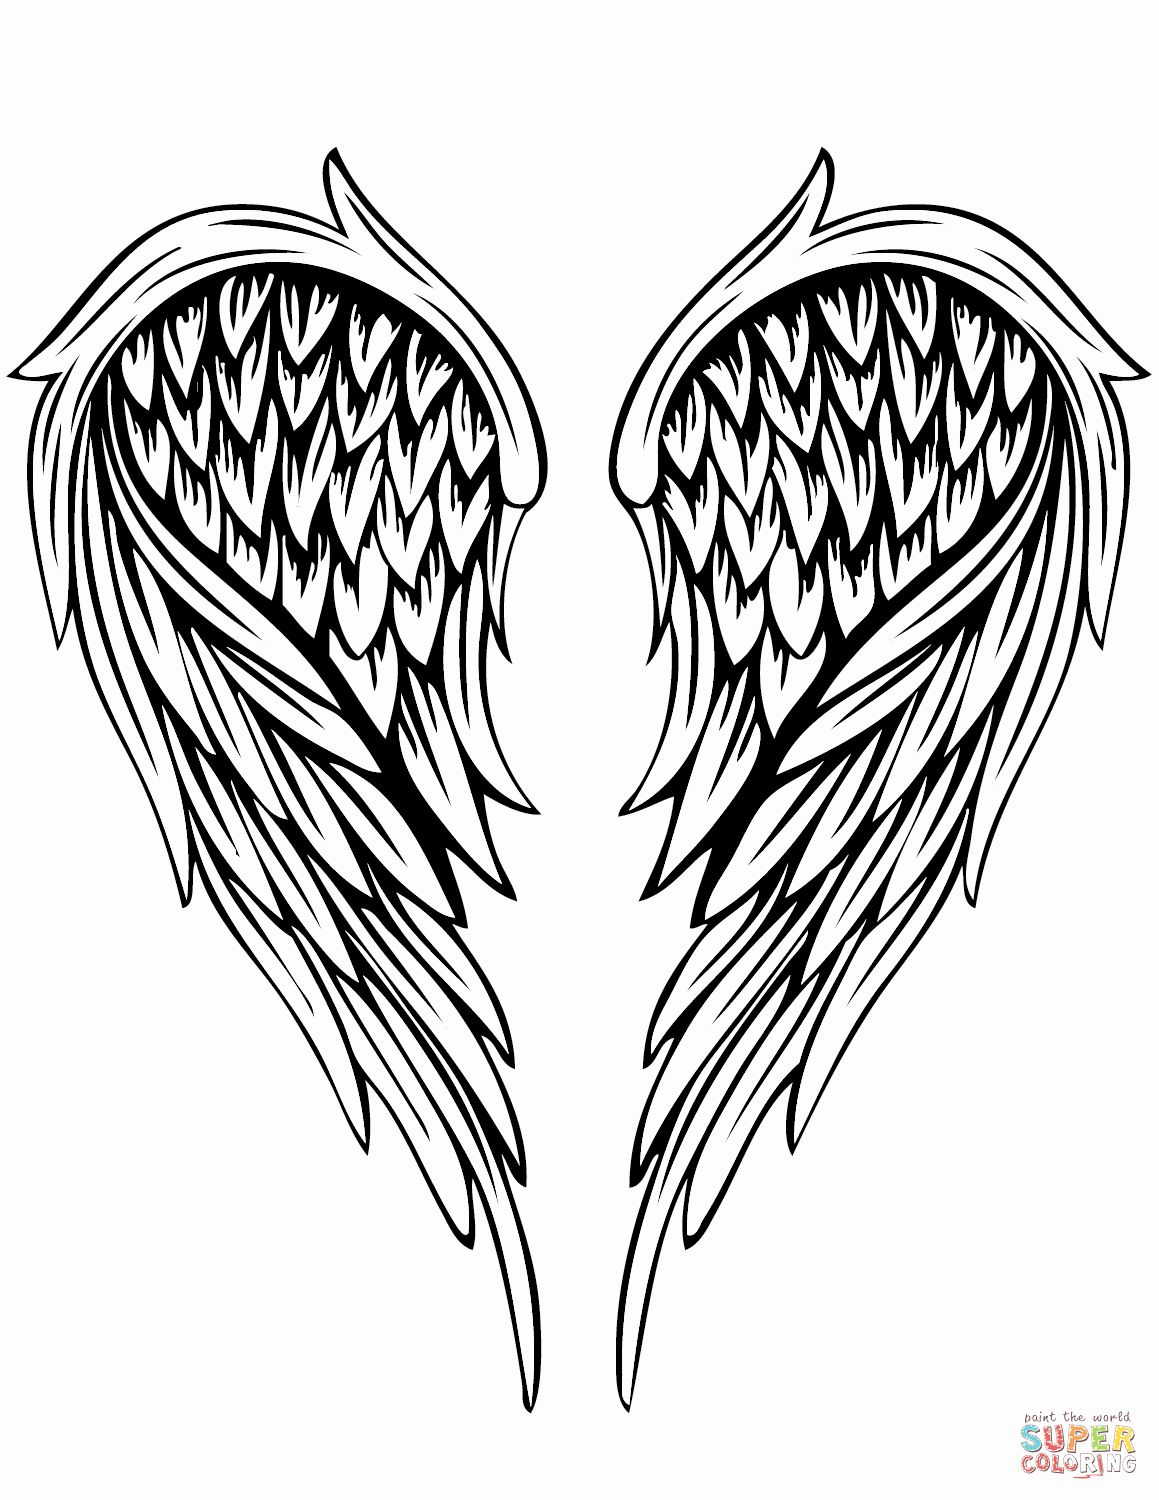 Tattoo Coloring Book Pages Beautiful Angel Wings Tattoo Coloring Page Angel Wings Tattoo Tattoo Coloring Book Wings Tattoo